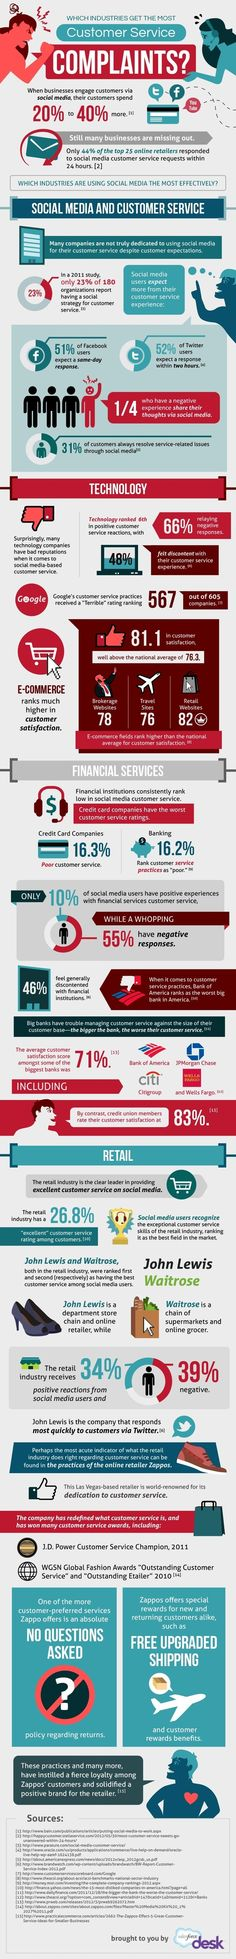 What Industries Get the Most Customer Service Complaints? Infographic http://sco.lt/6oTXZB The Internet and social media have made it much easier for people to vent about bad service to a potentially large audience. #infographic